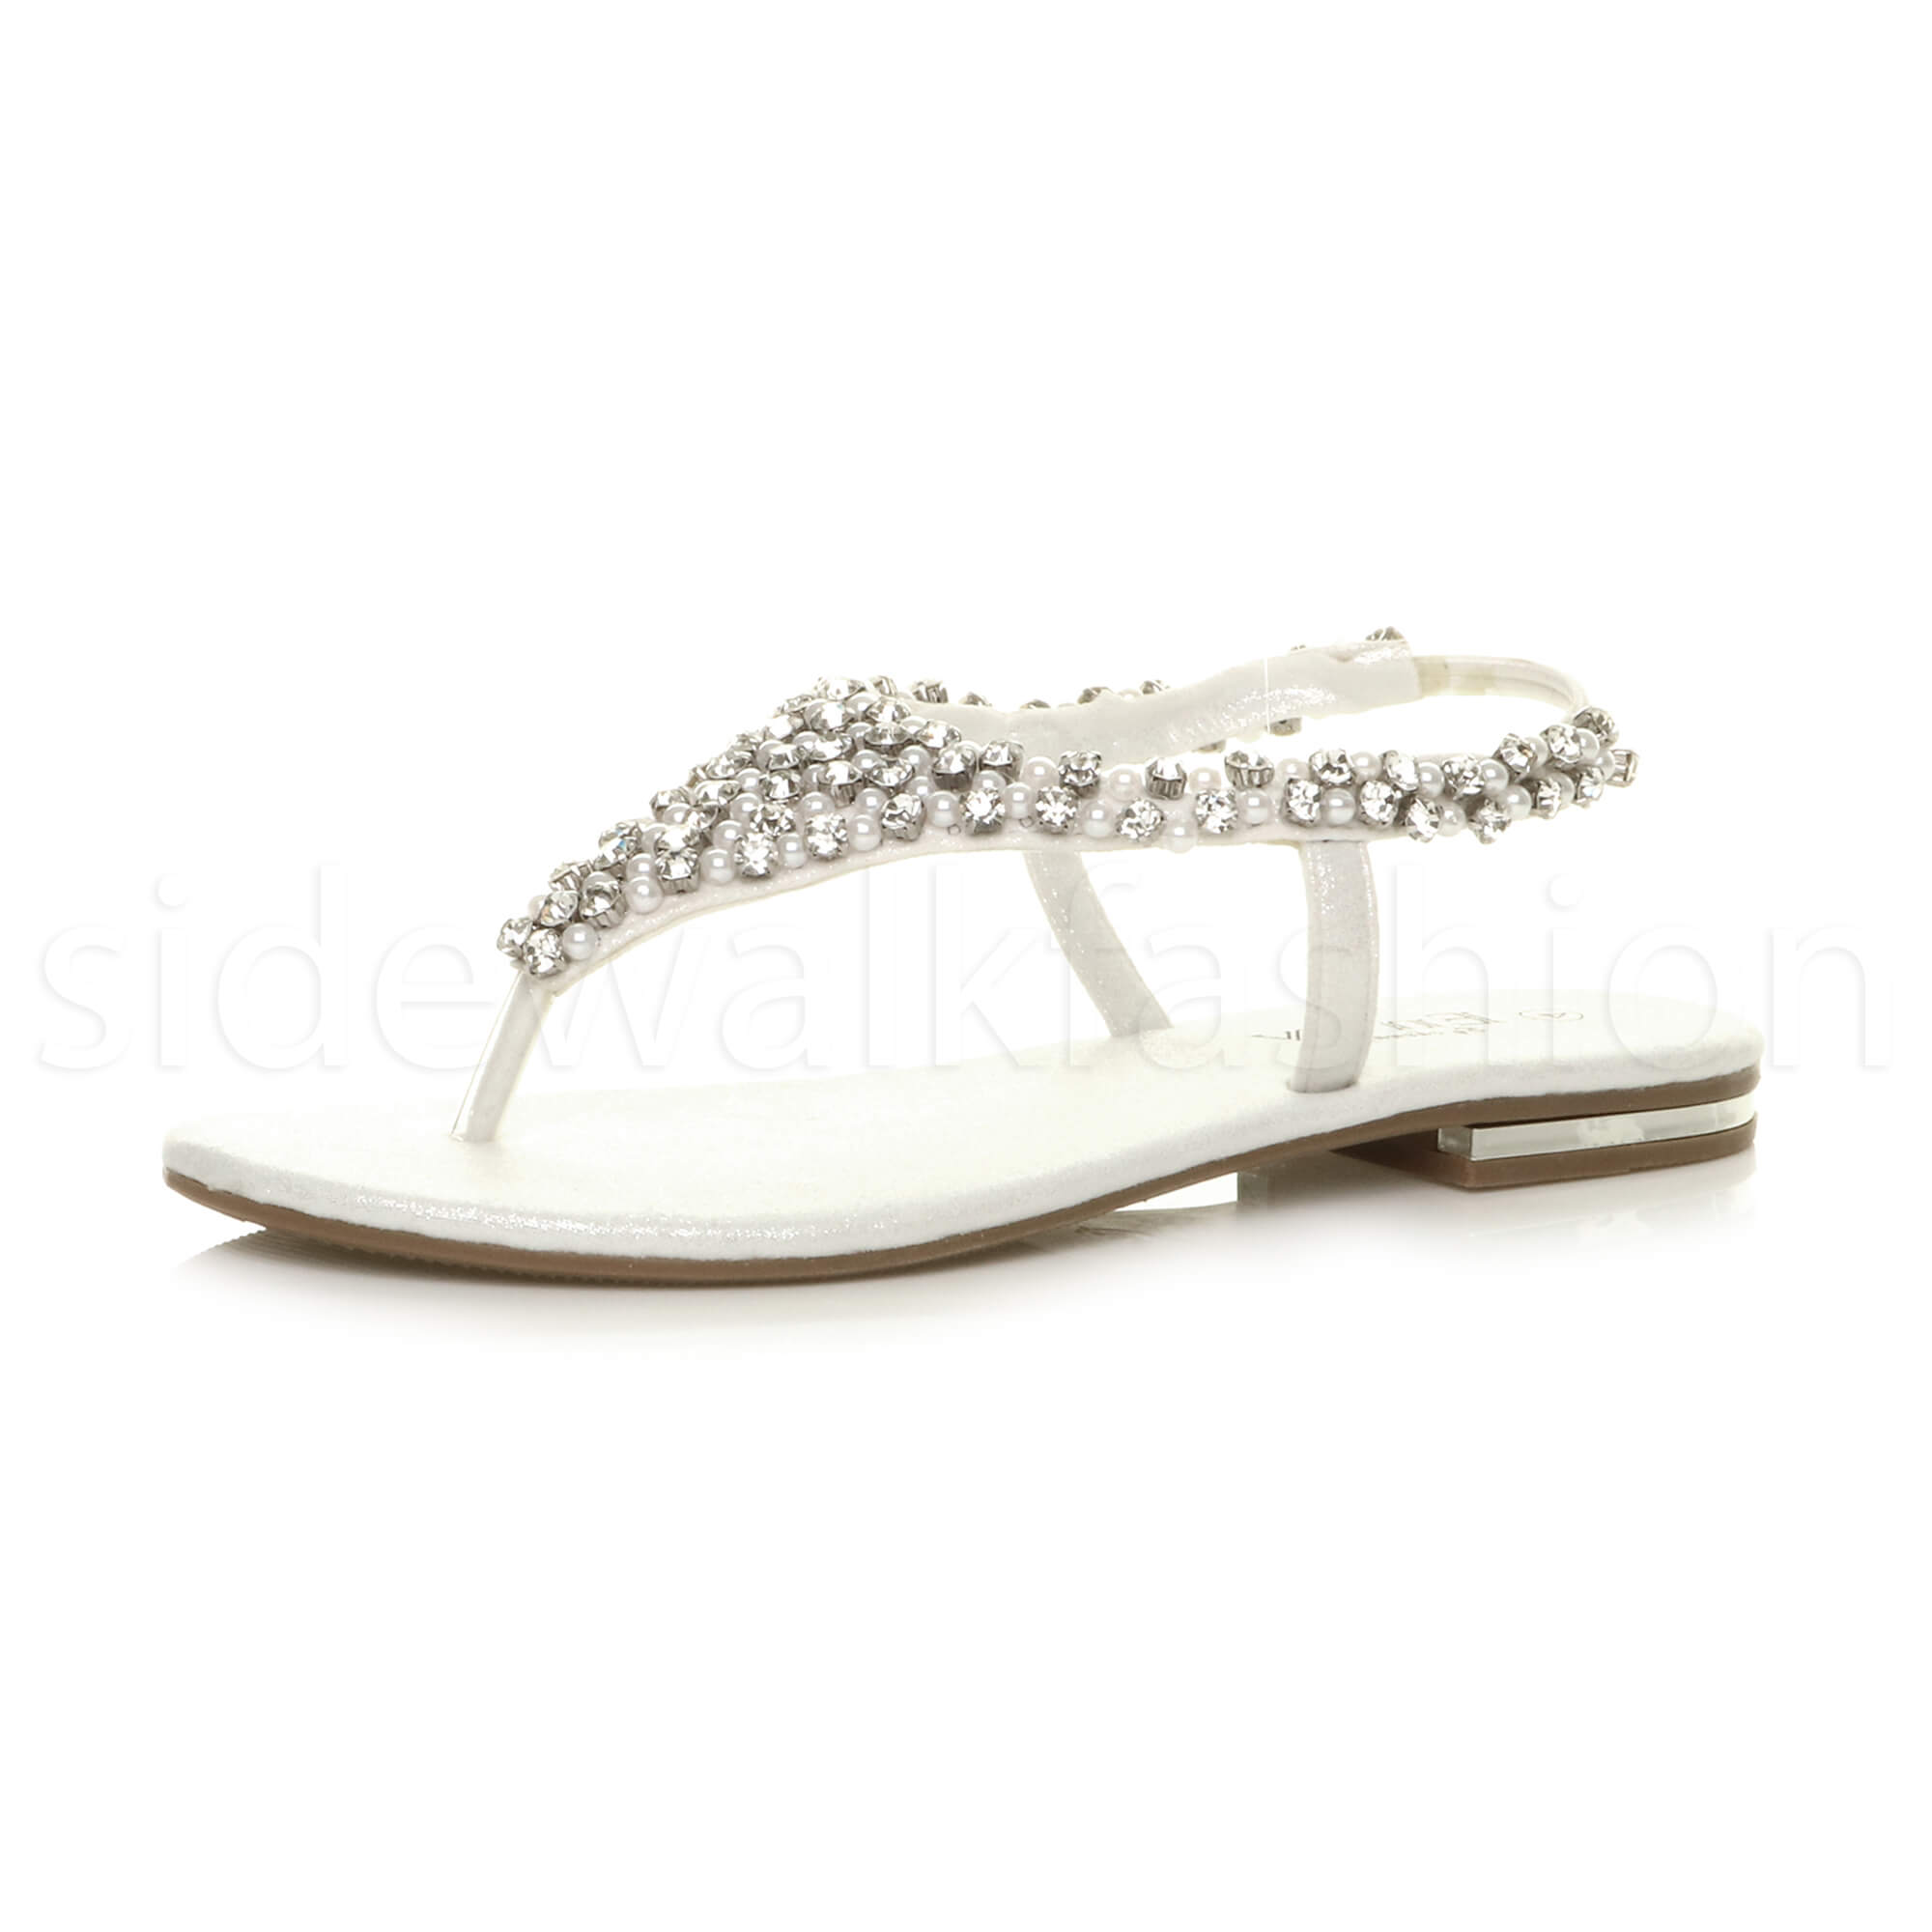 Buy sparkly sandals uk cheap,up to 68